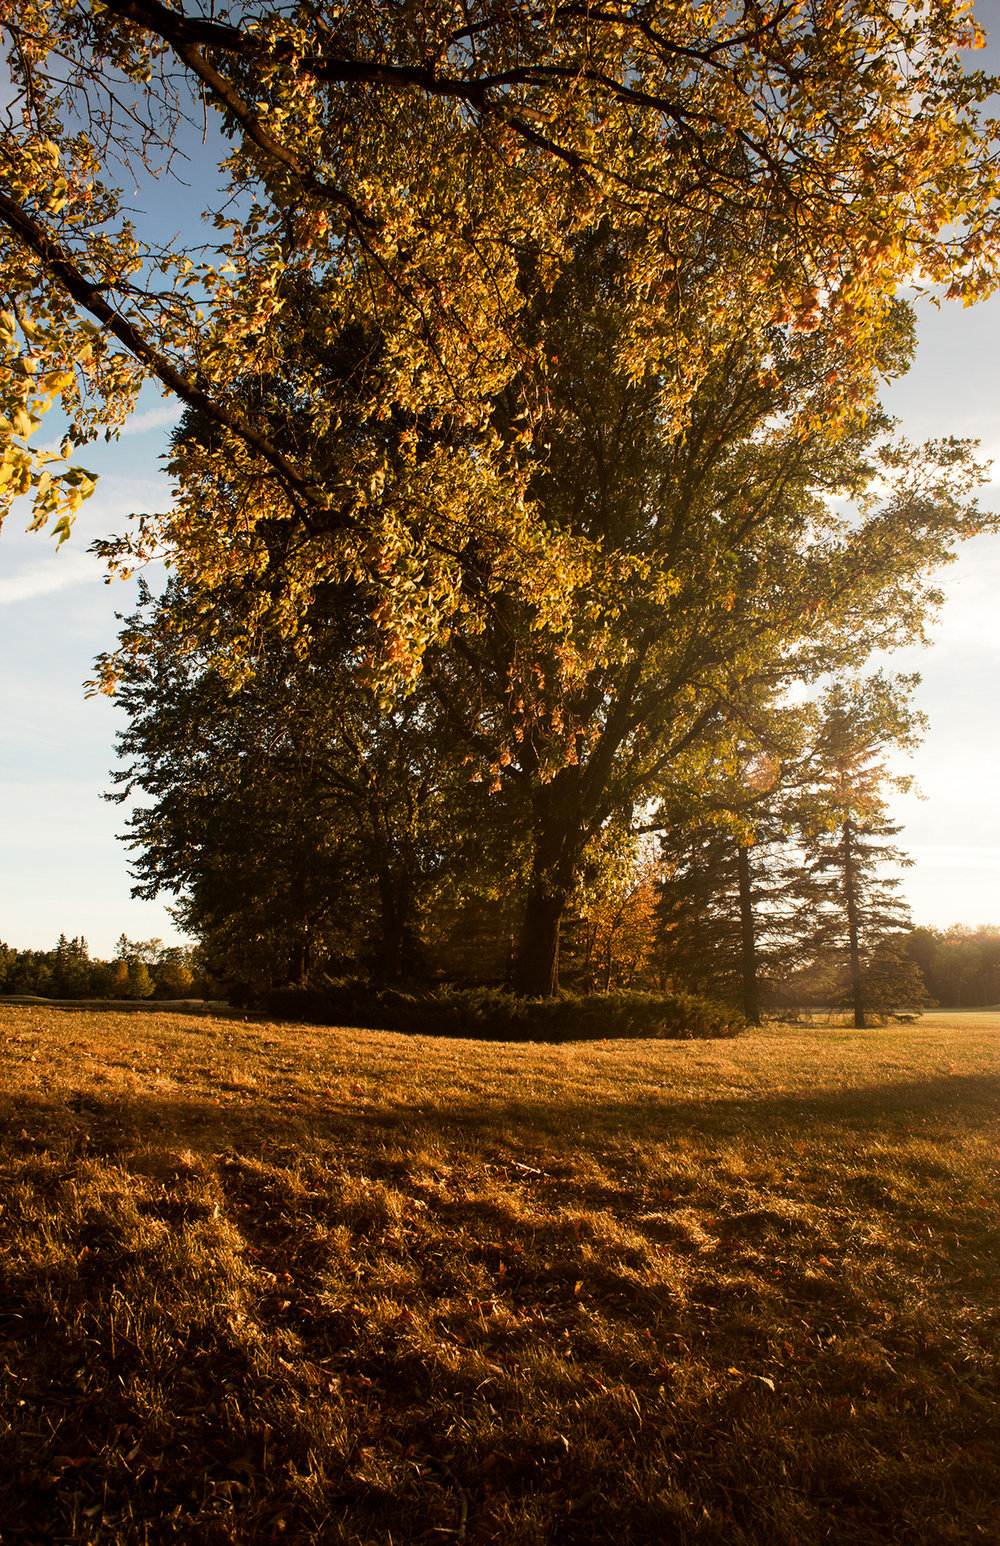 Fall.      By: Robert Lowdon     The beginning of Fall as the leaves turn in Winnipeg, MB.